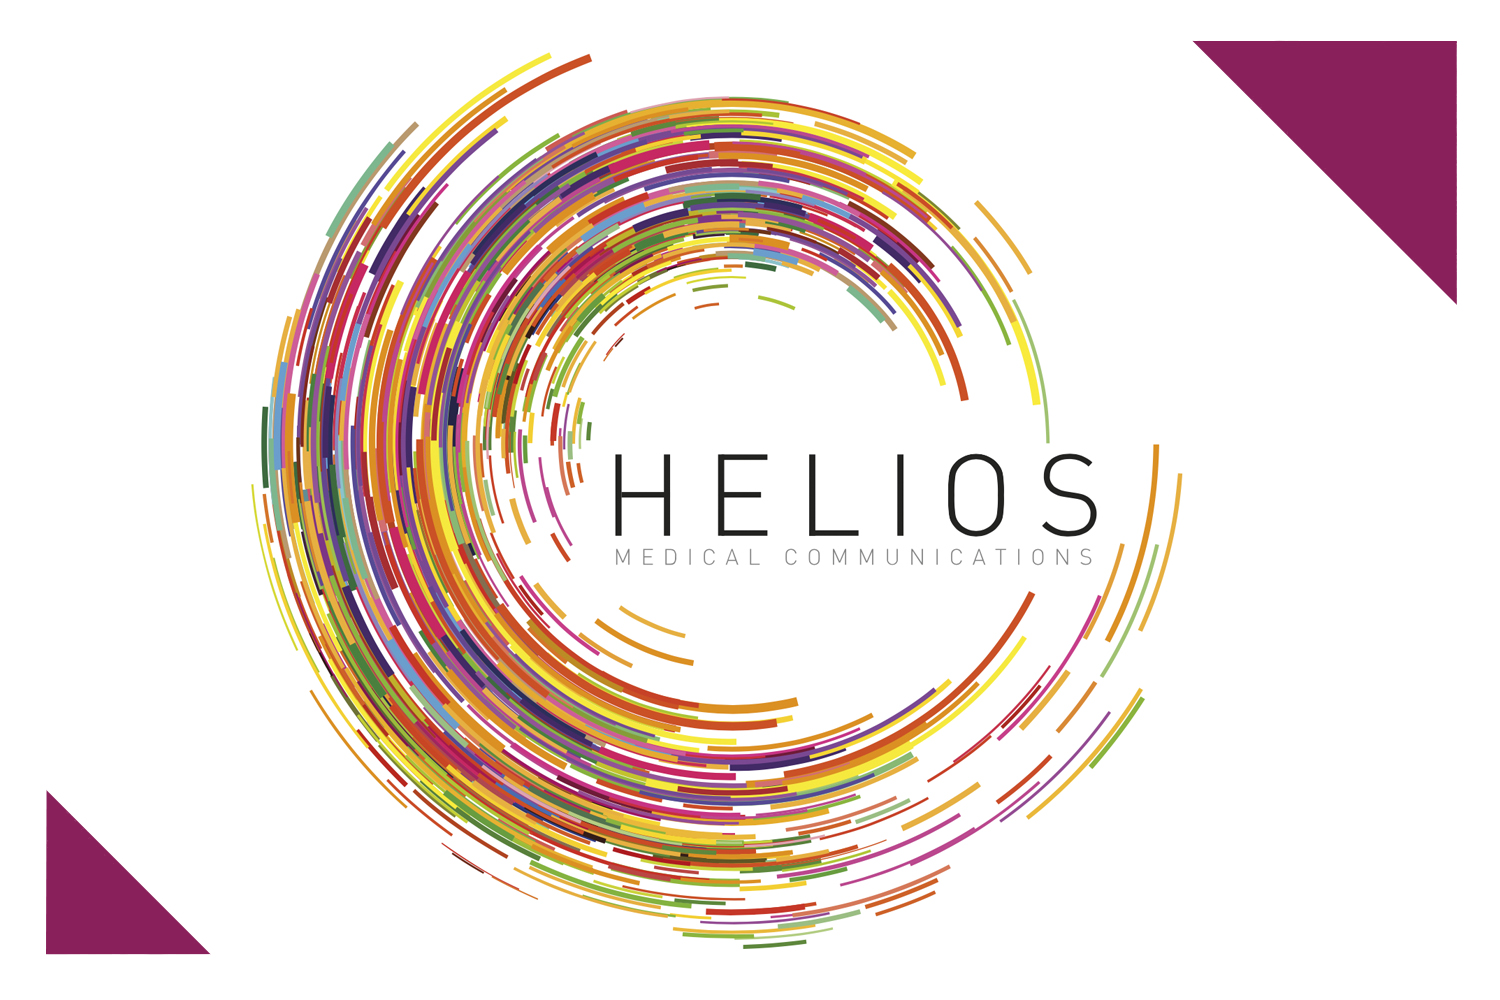 NorthEdge invests in leading independent medical communications agency Helios Medical Communications